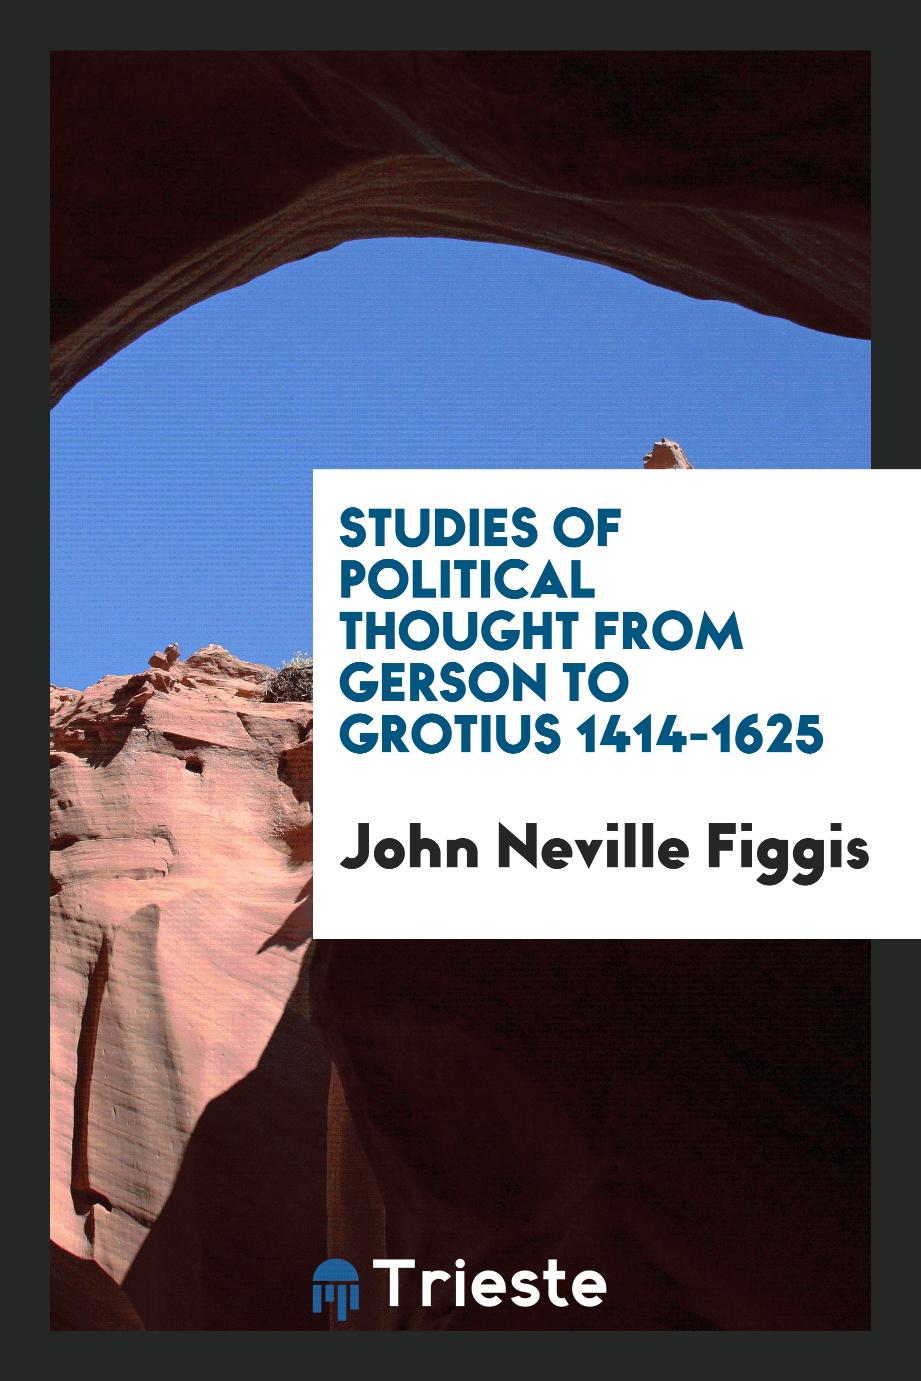 Studies of political thought from Gerson to Grotius 1414-1625